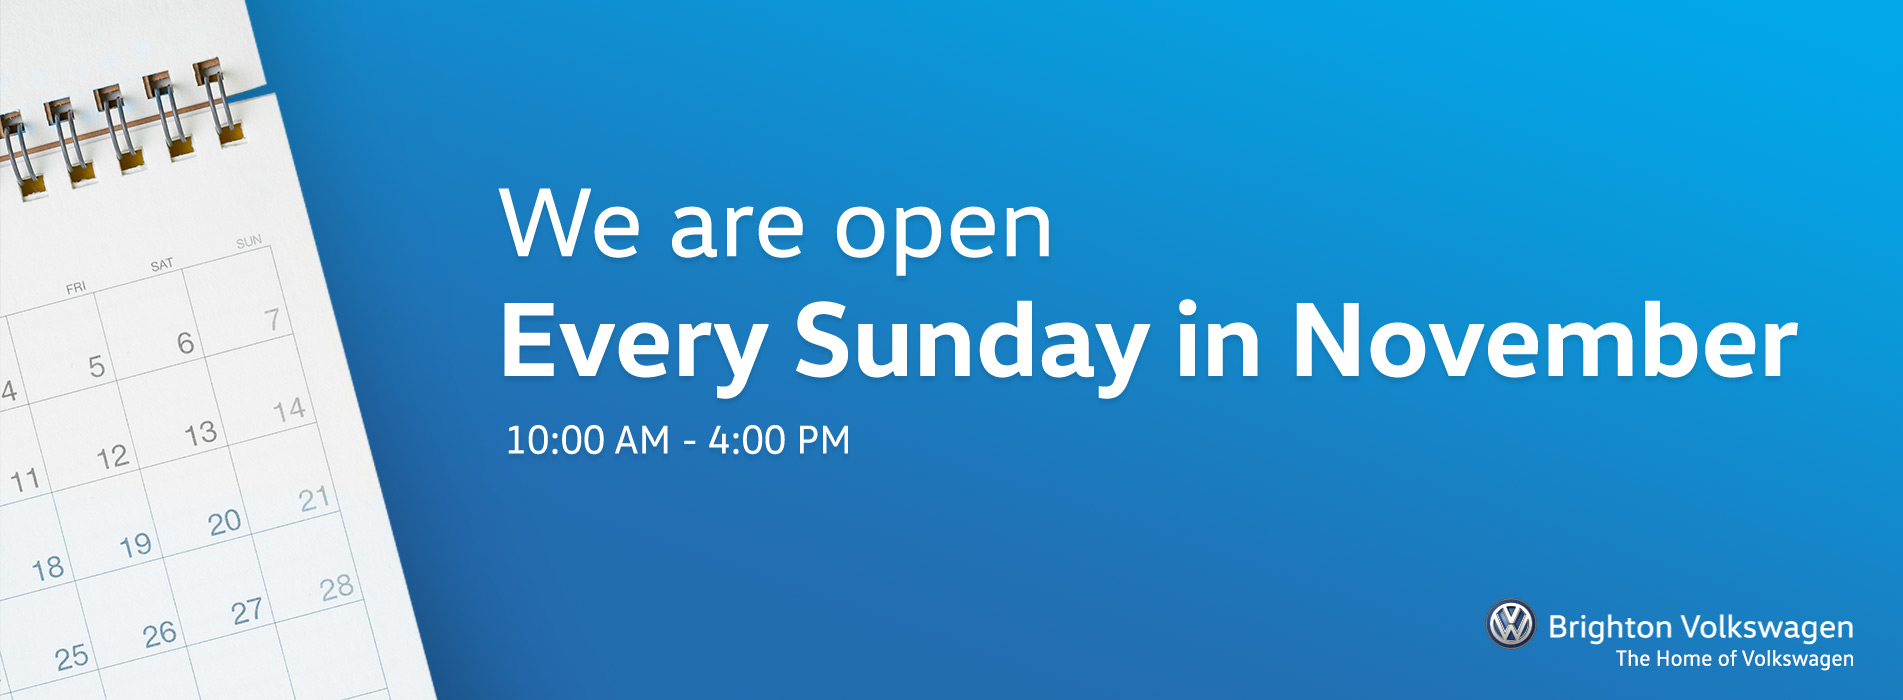 We are open - Every Sunday in November